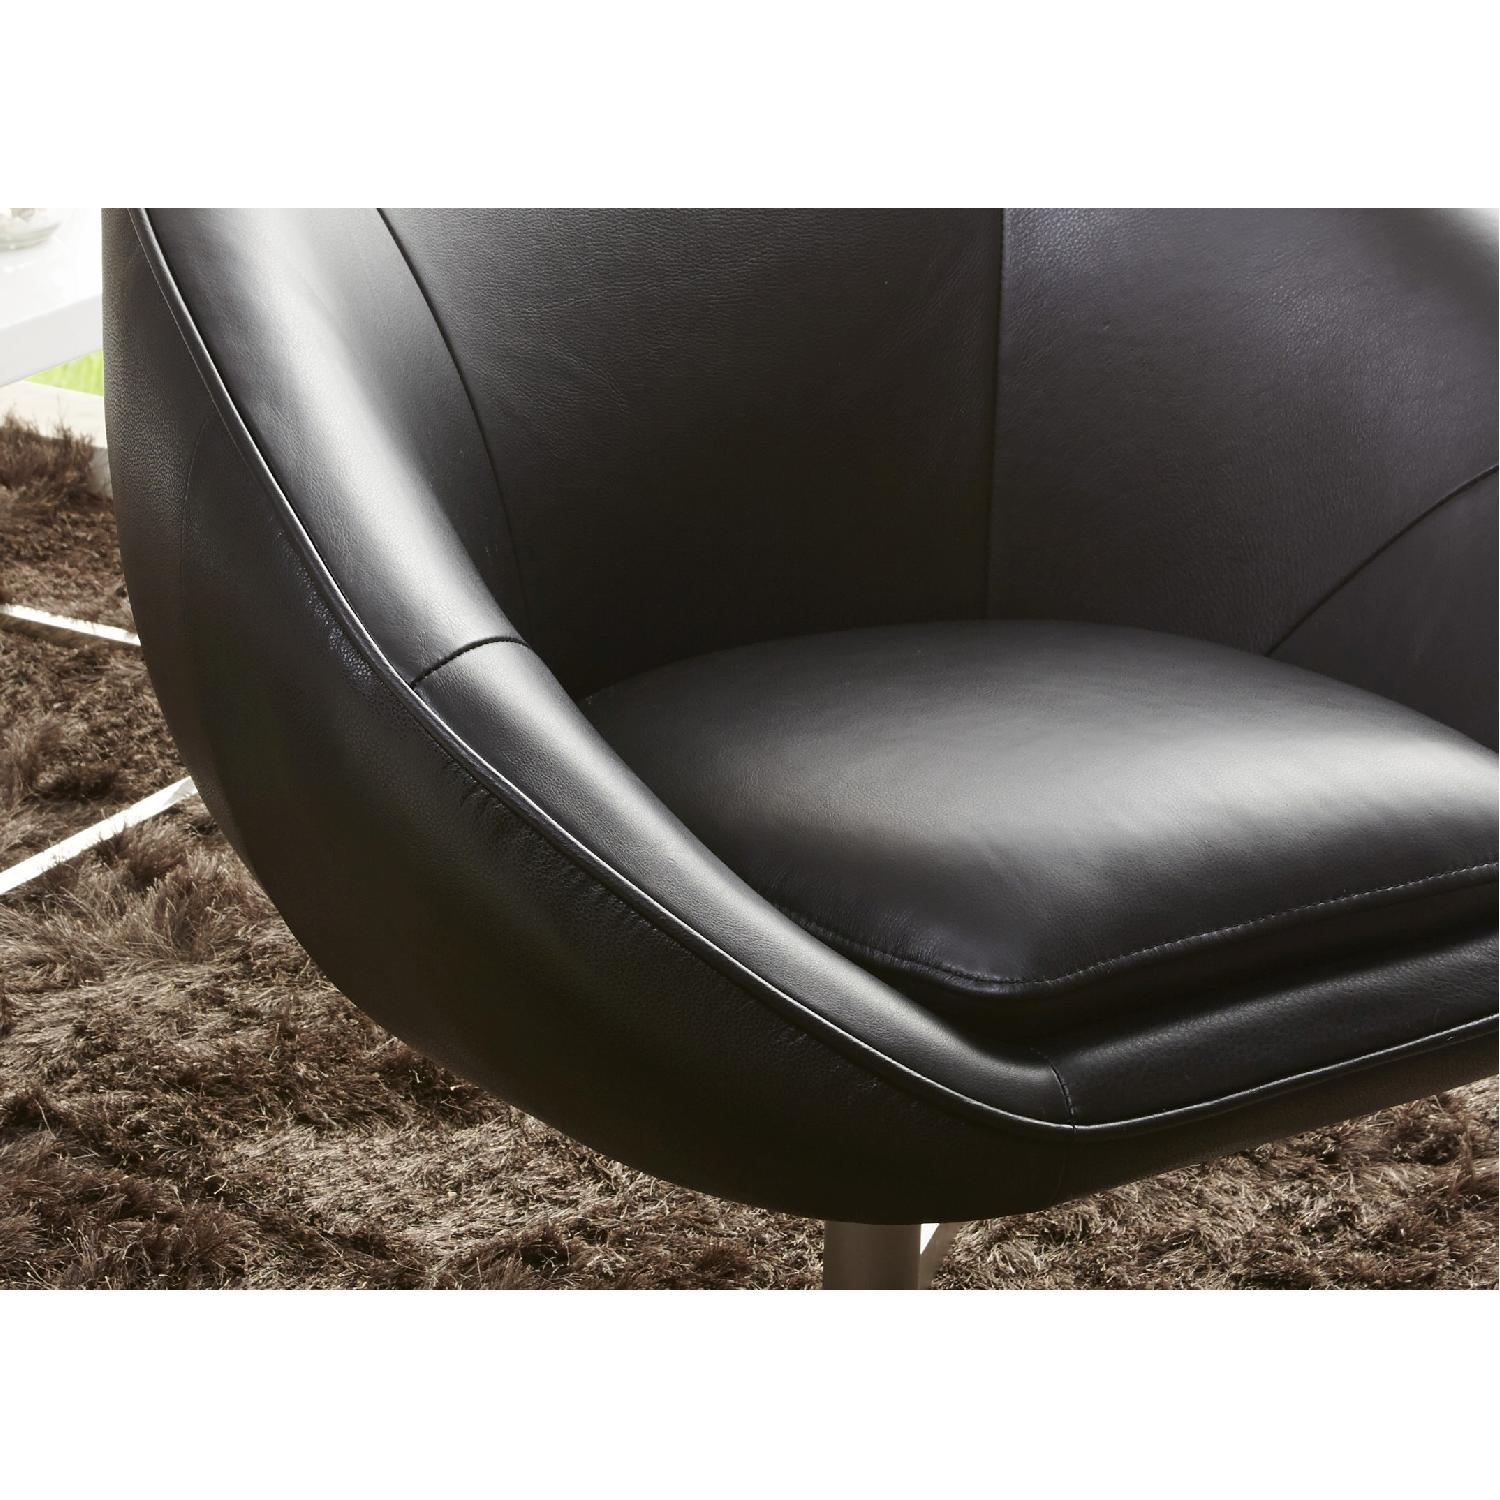 Modern Swivel Accent Chair in Black Premium Leather w/ Matching Faux Leather & Chrome Base - image-3